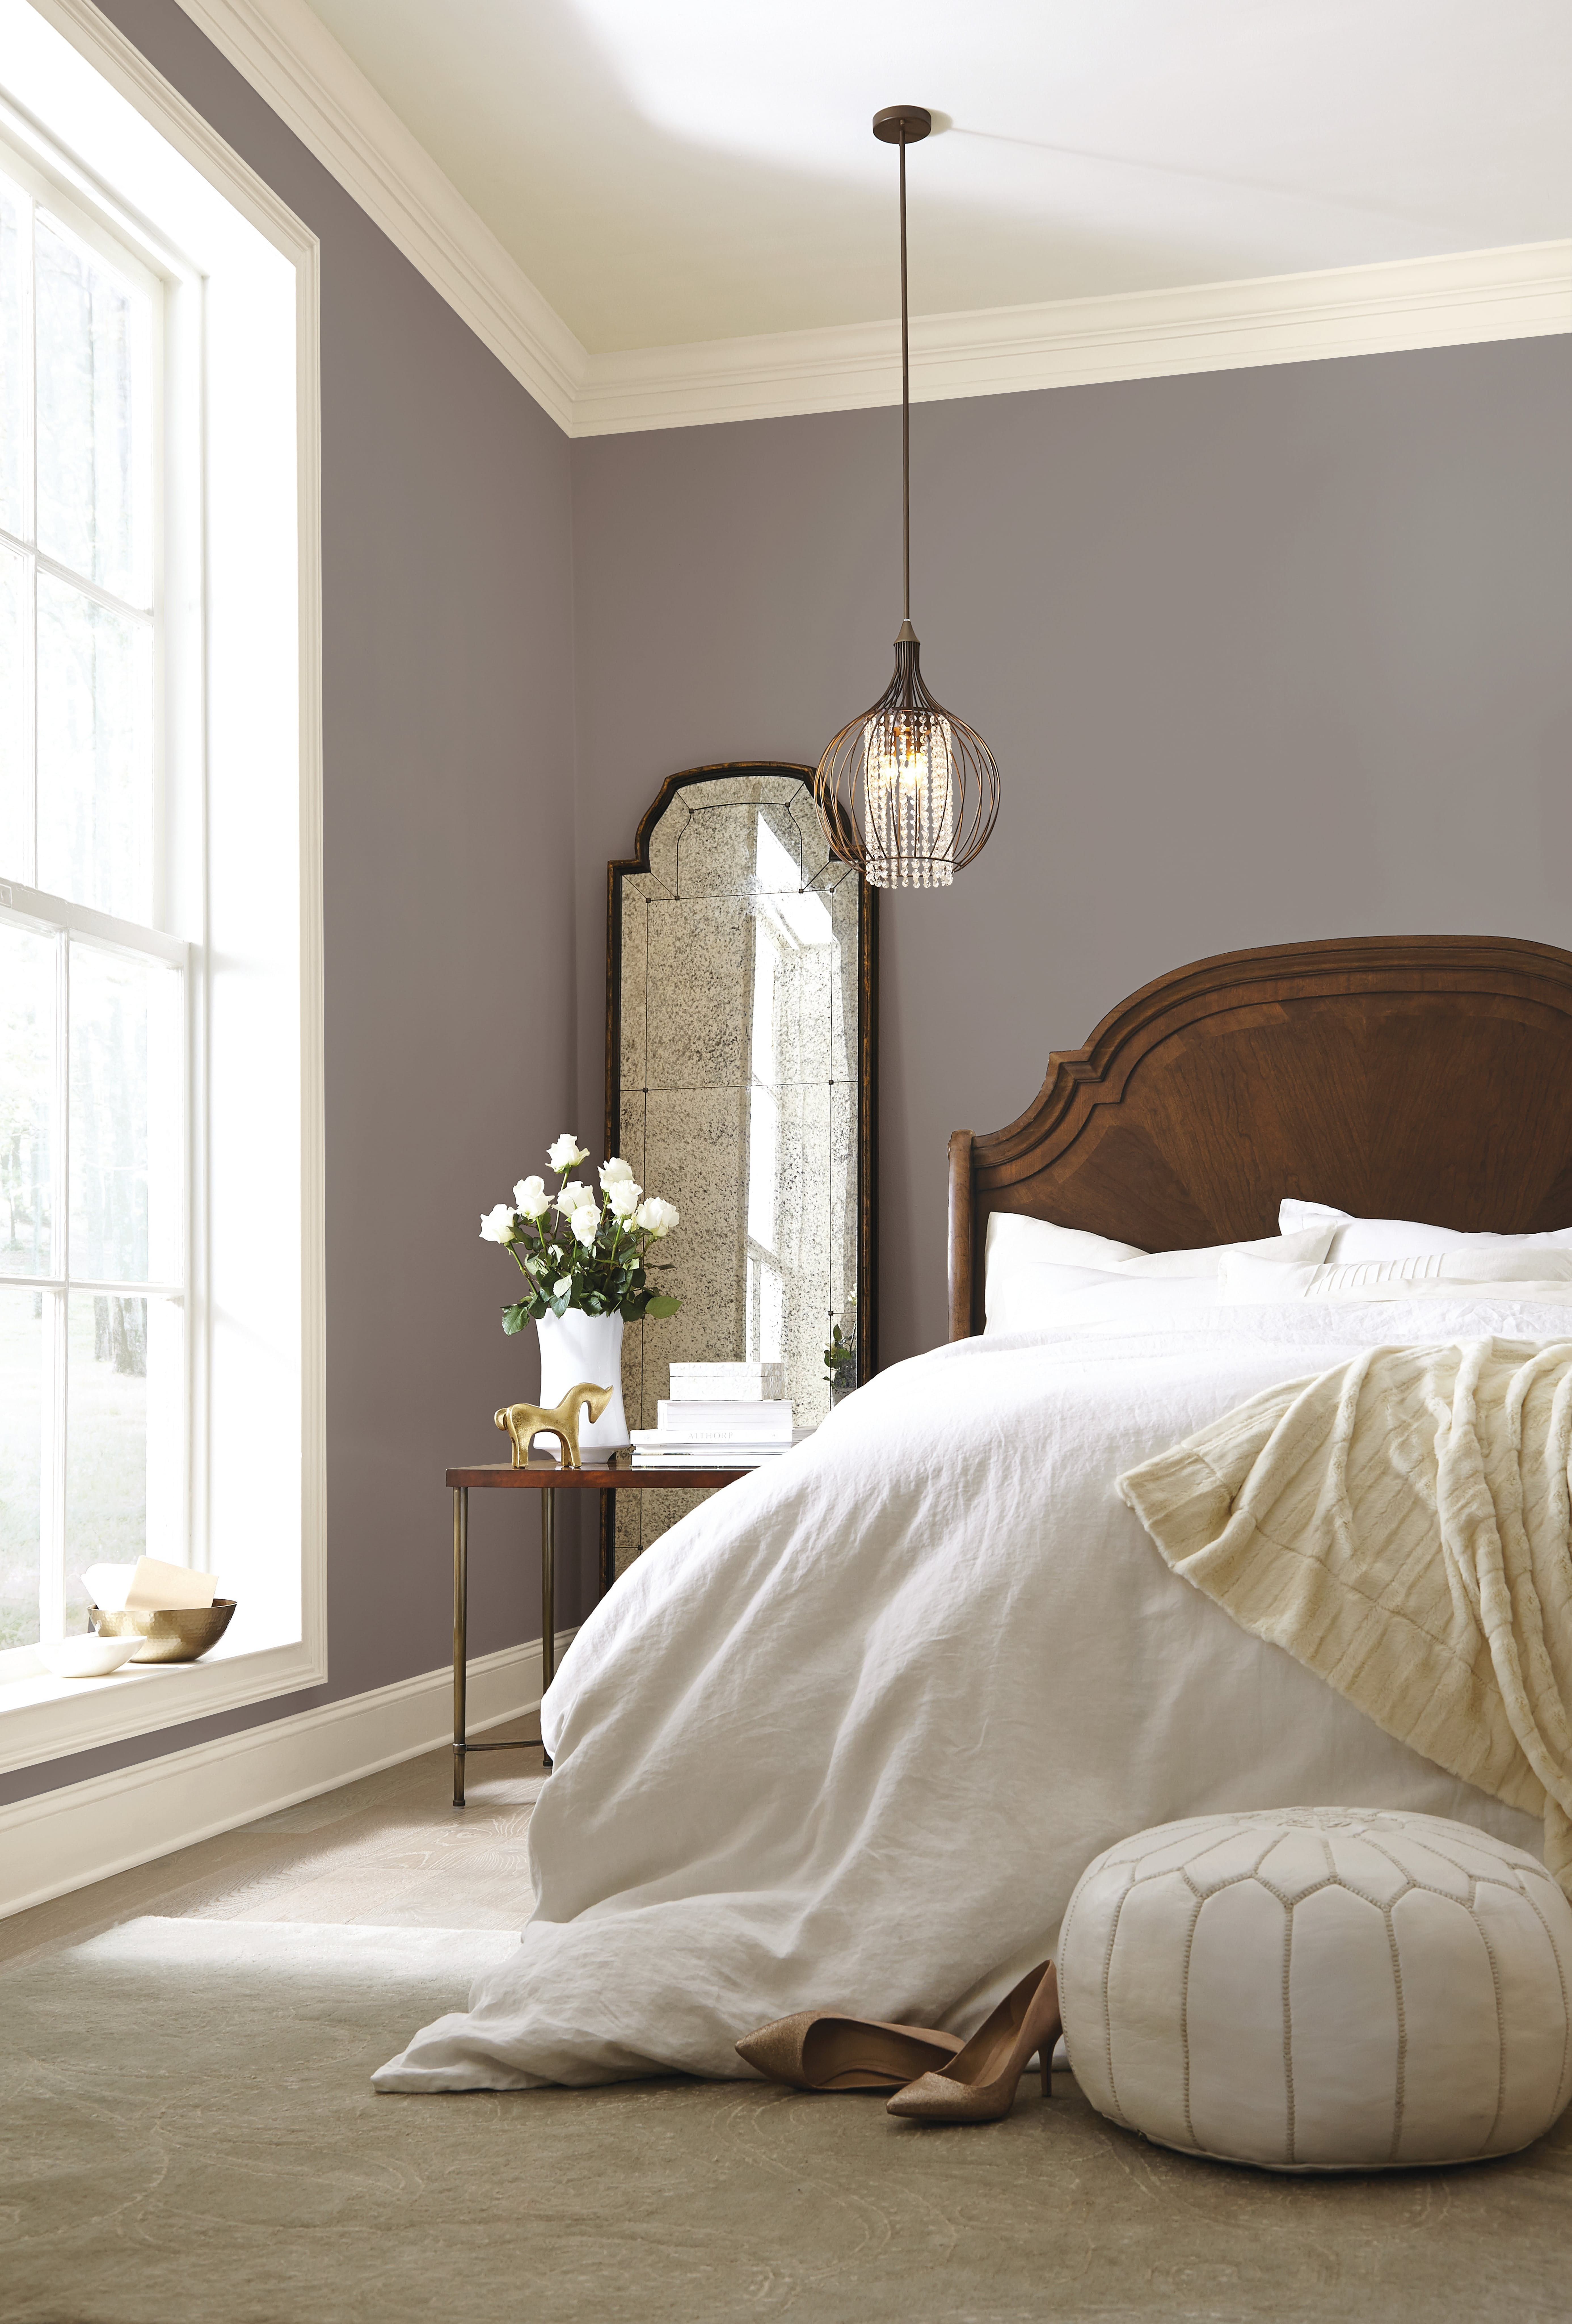 Master bedroom paint colors  The  Colors of the Year According to Paint Companies  Paint